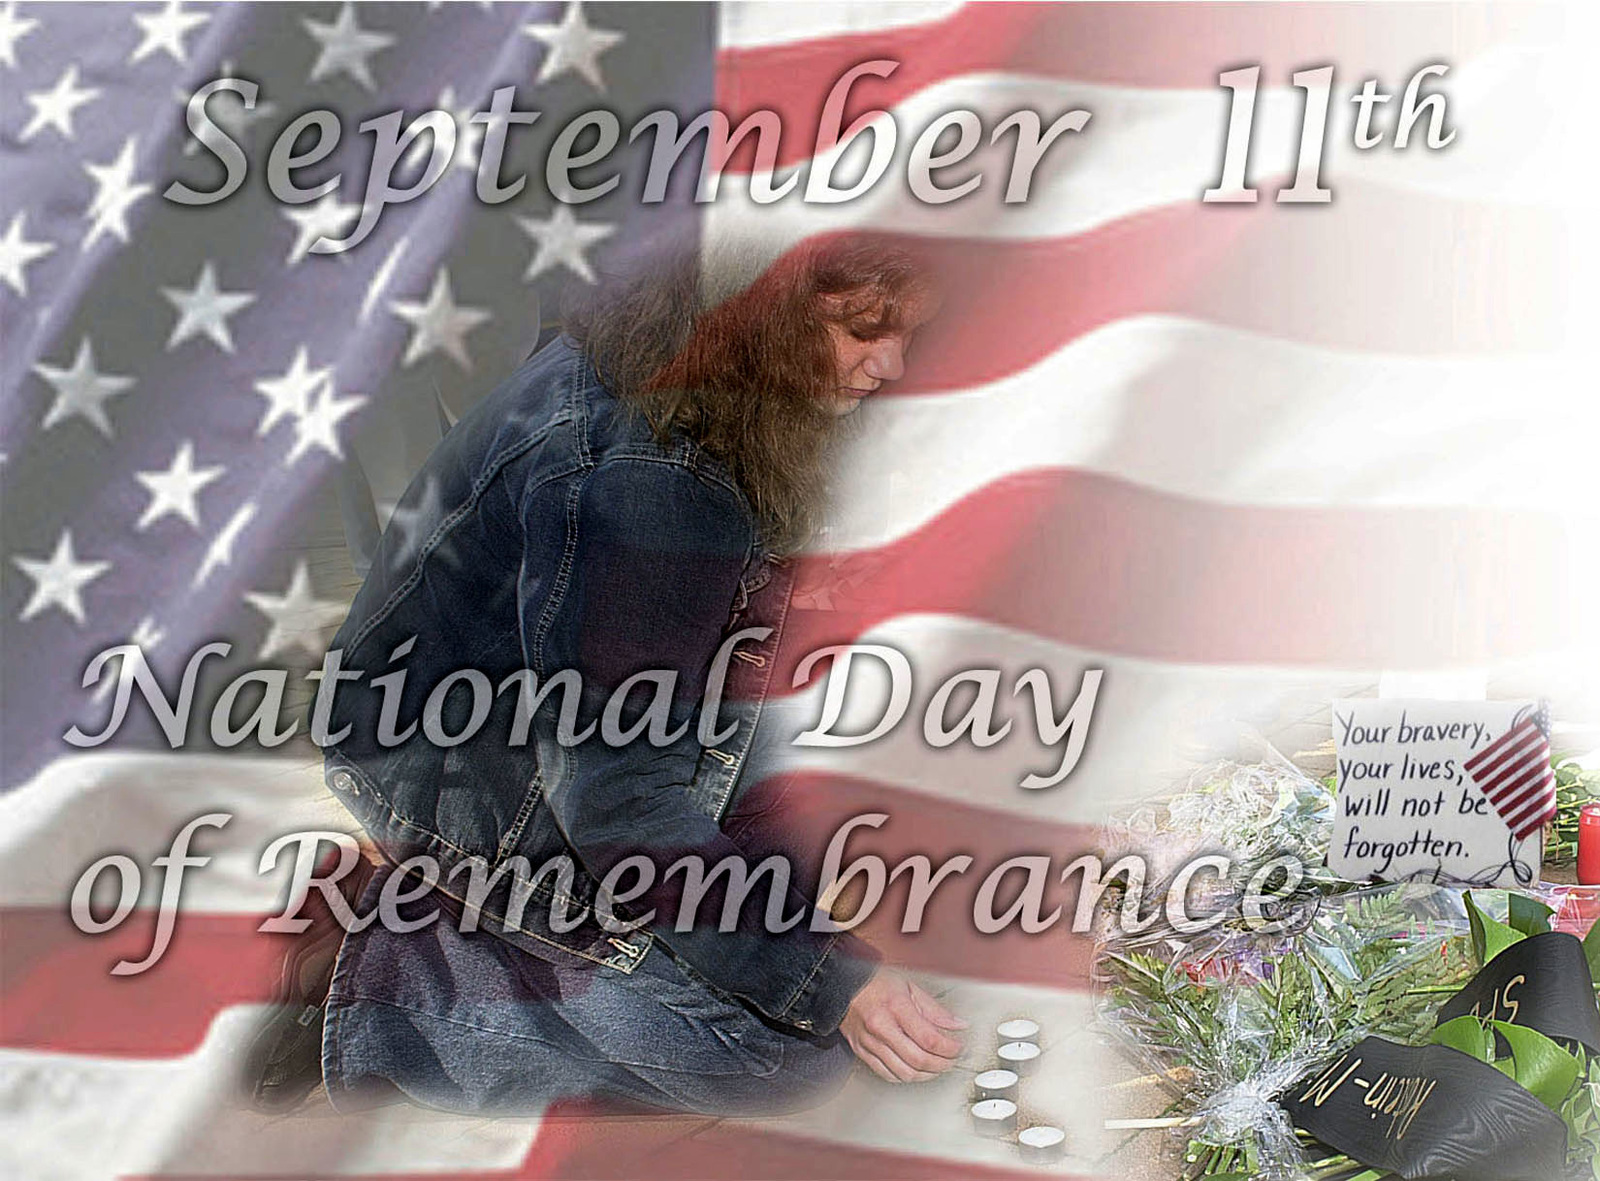 Poster art created for a ceremony held at Headquarters US Southern Command (USSOUTHCOM) for National Day of Remembrance. Created by Thomas Pattison, CIV, USA